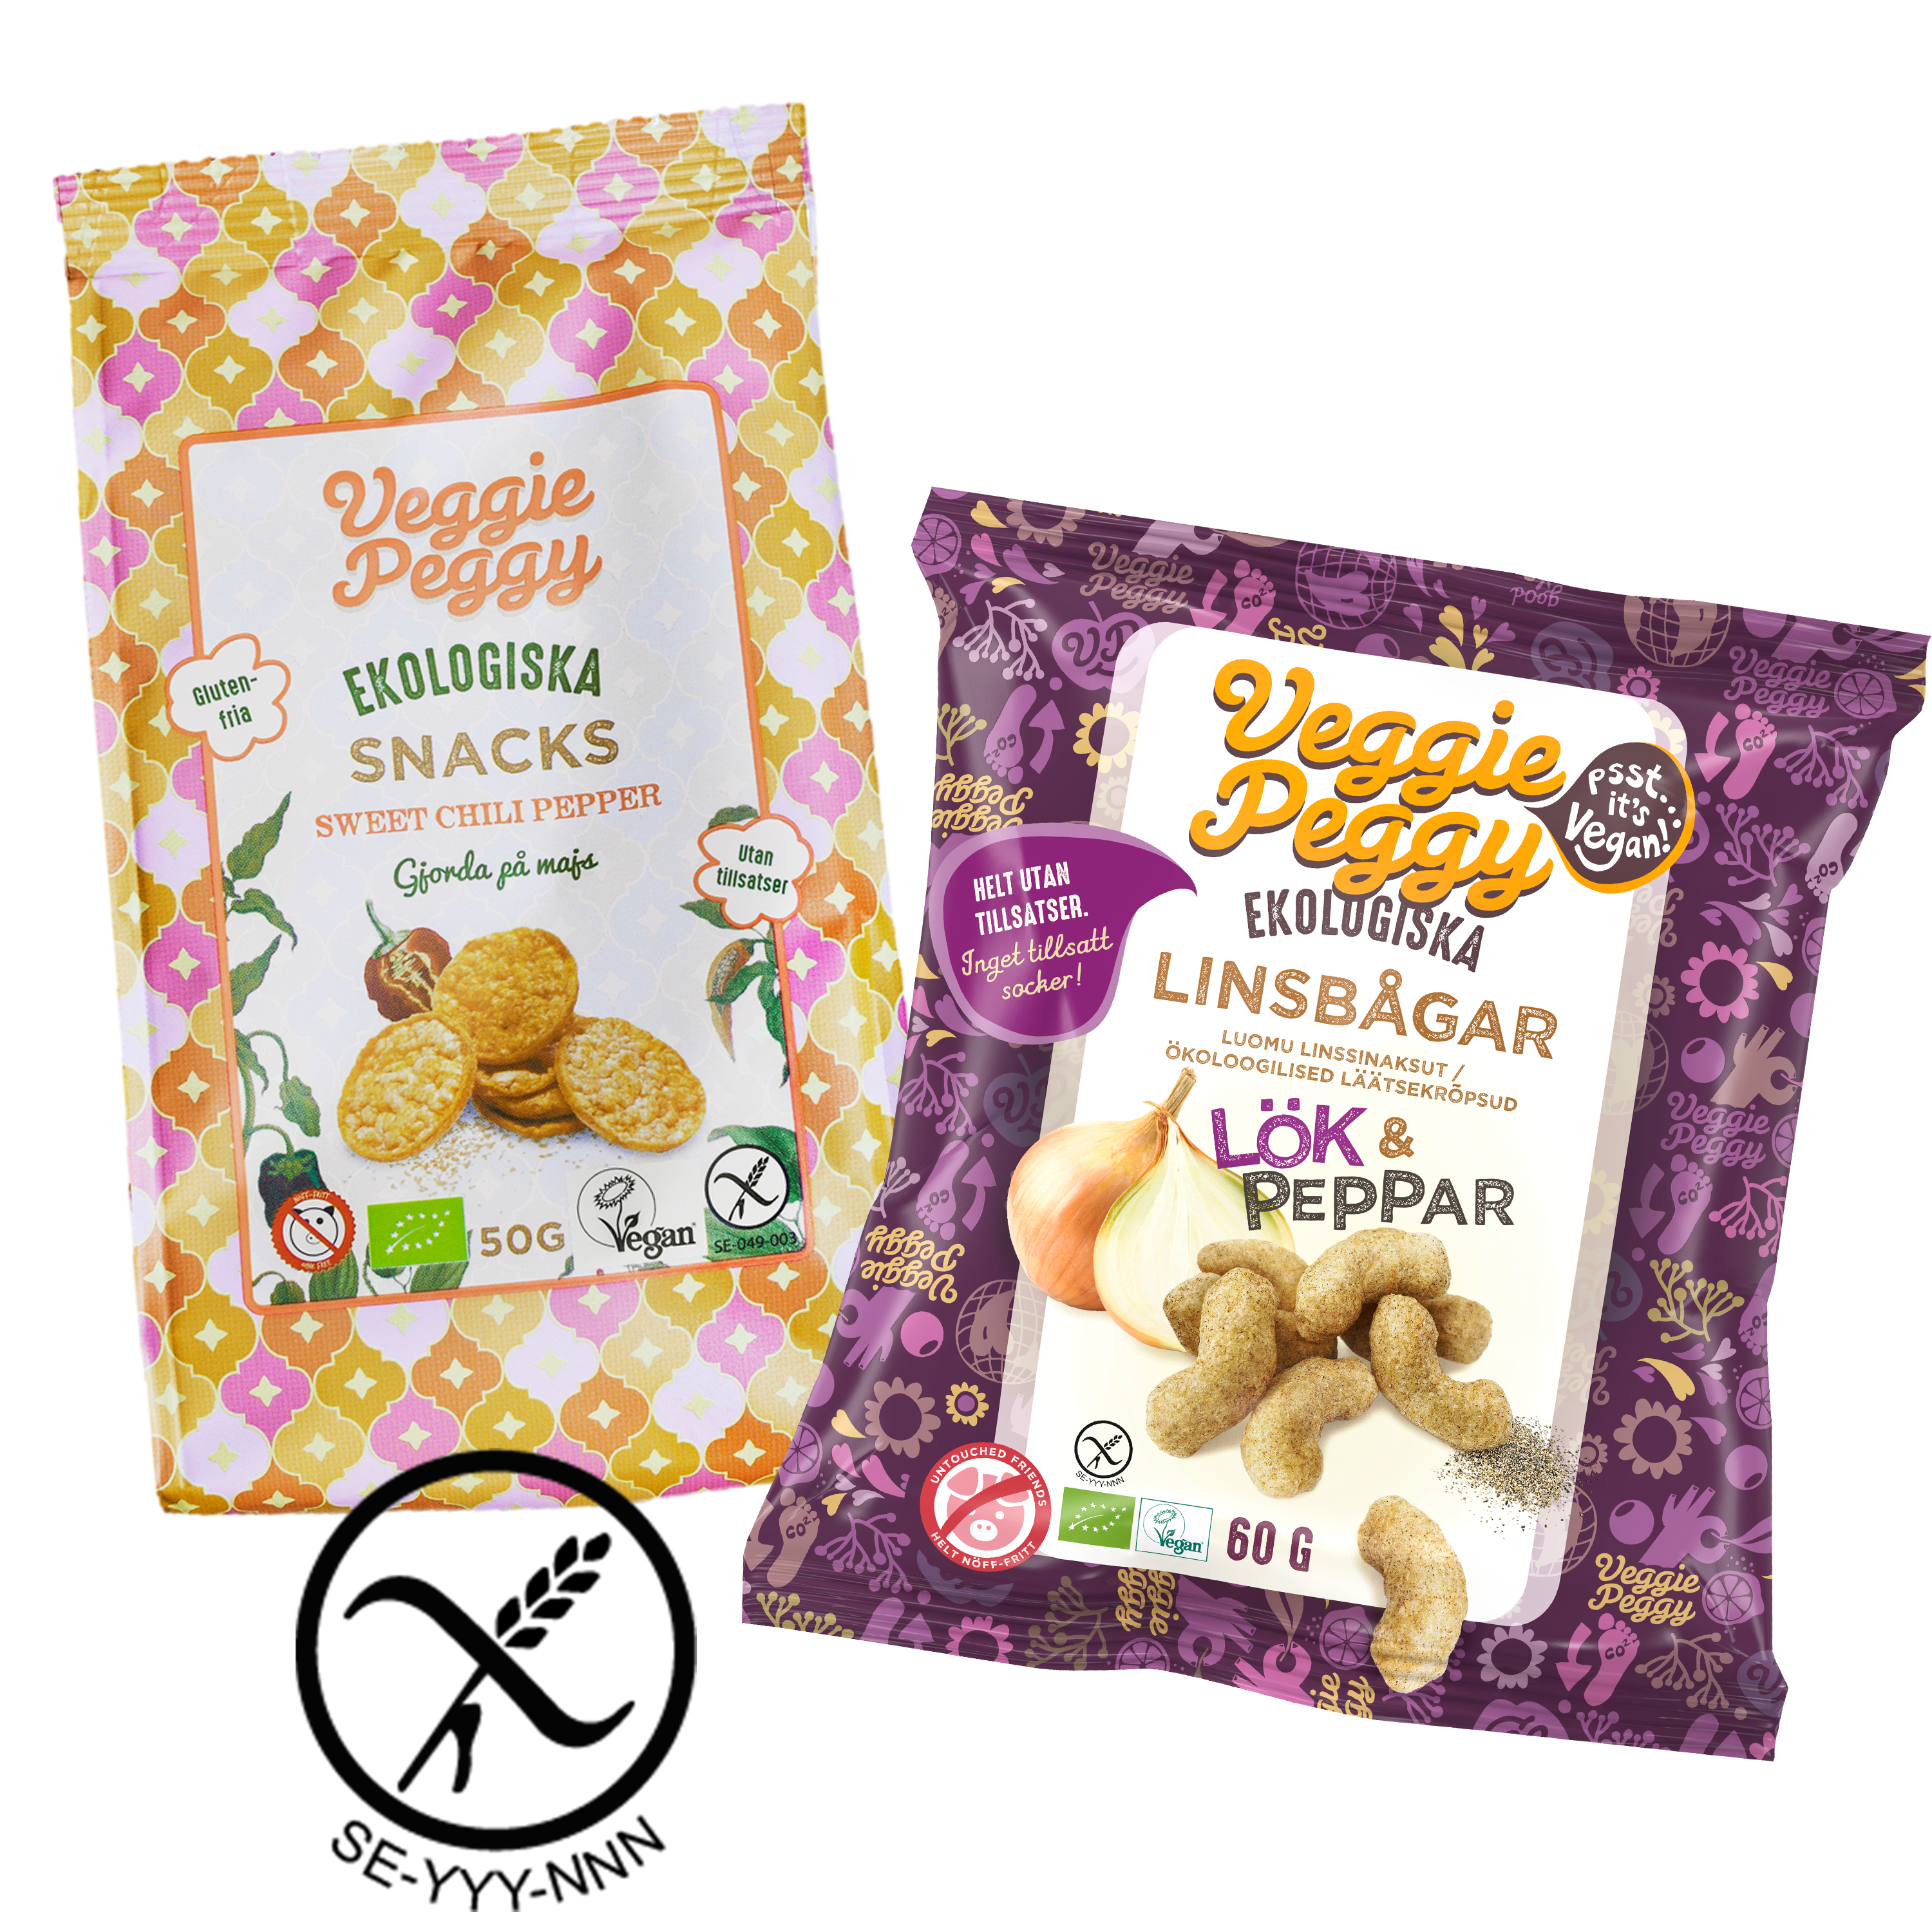 Veggie Peggy snacks celiaki